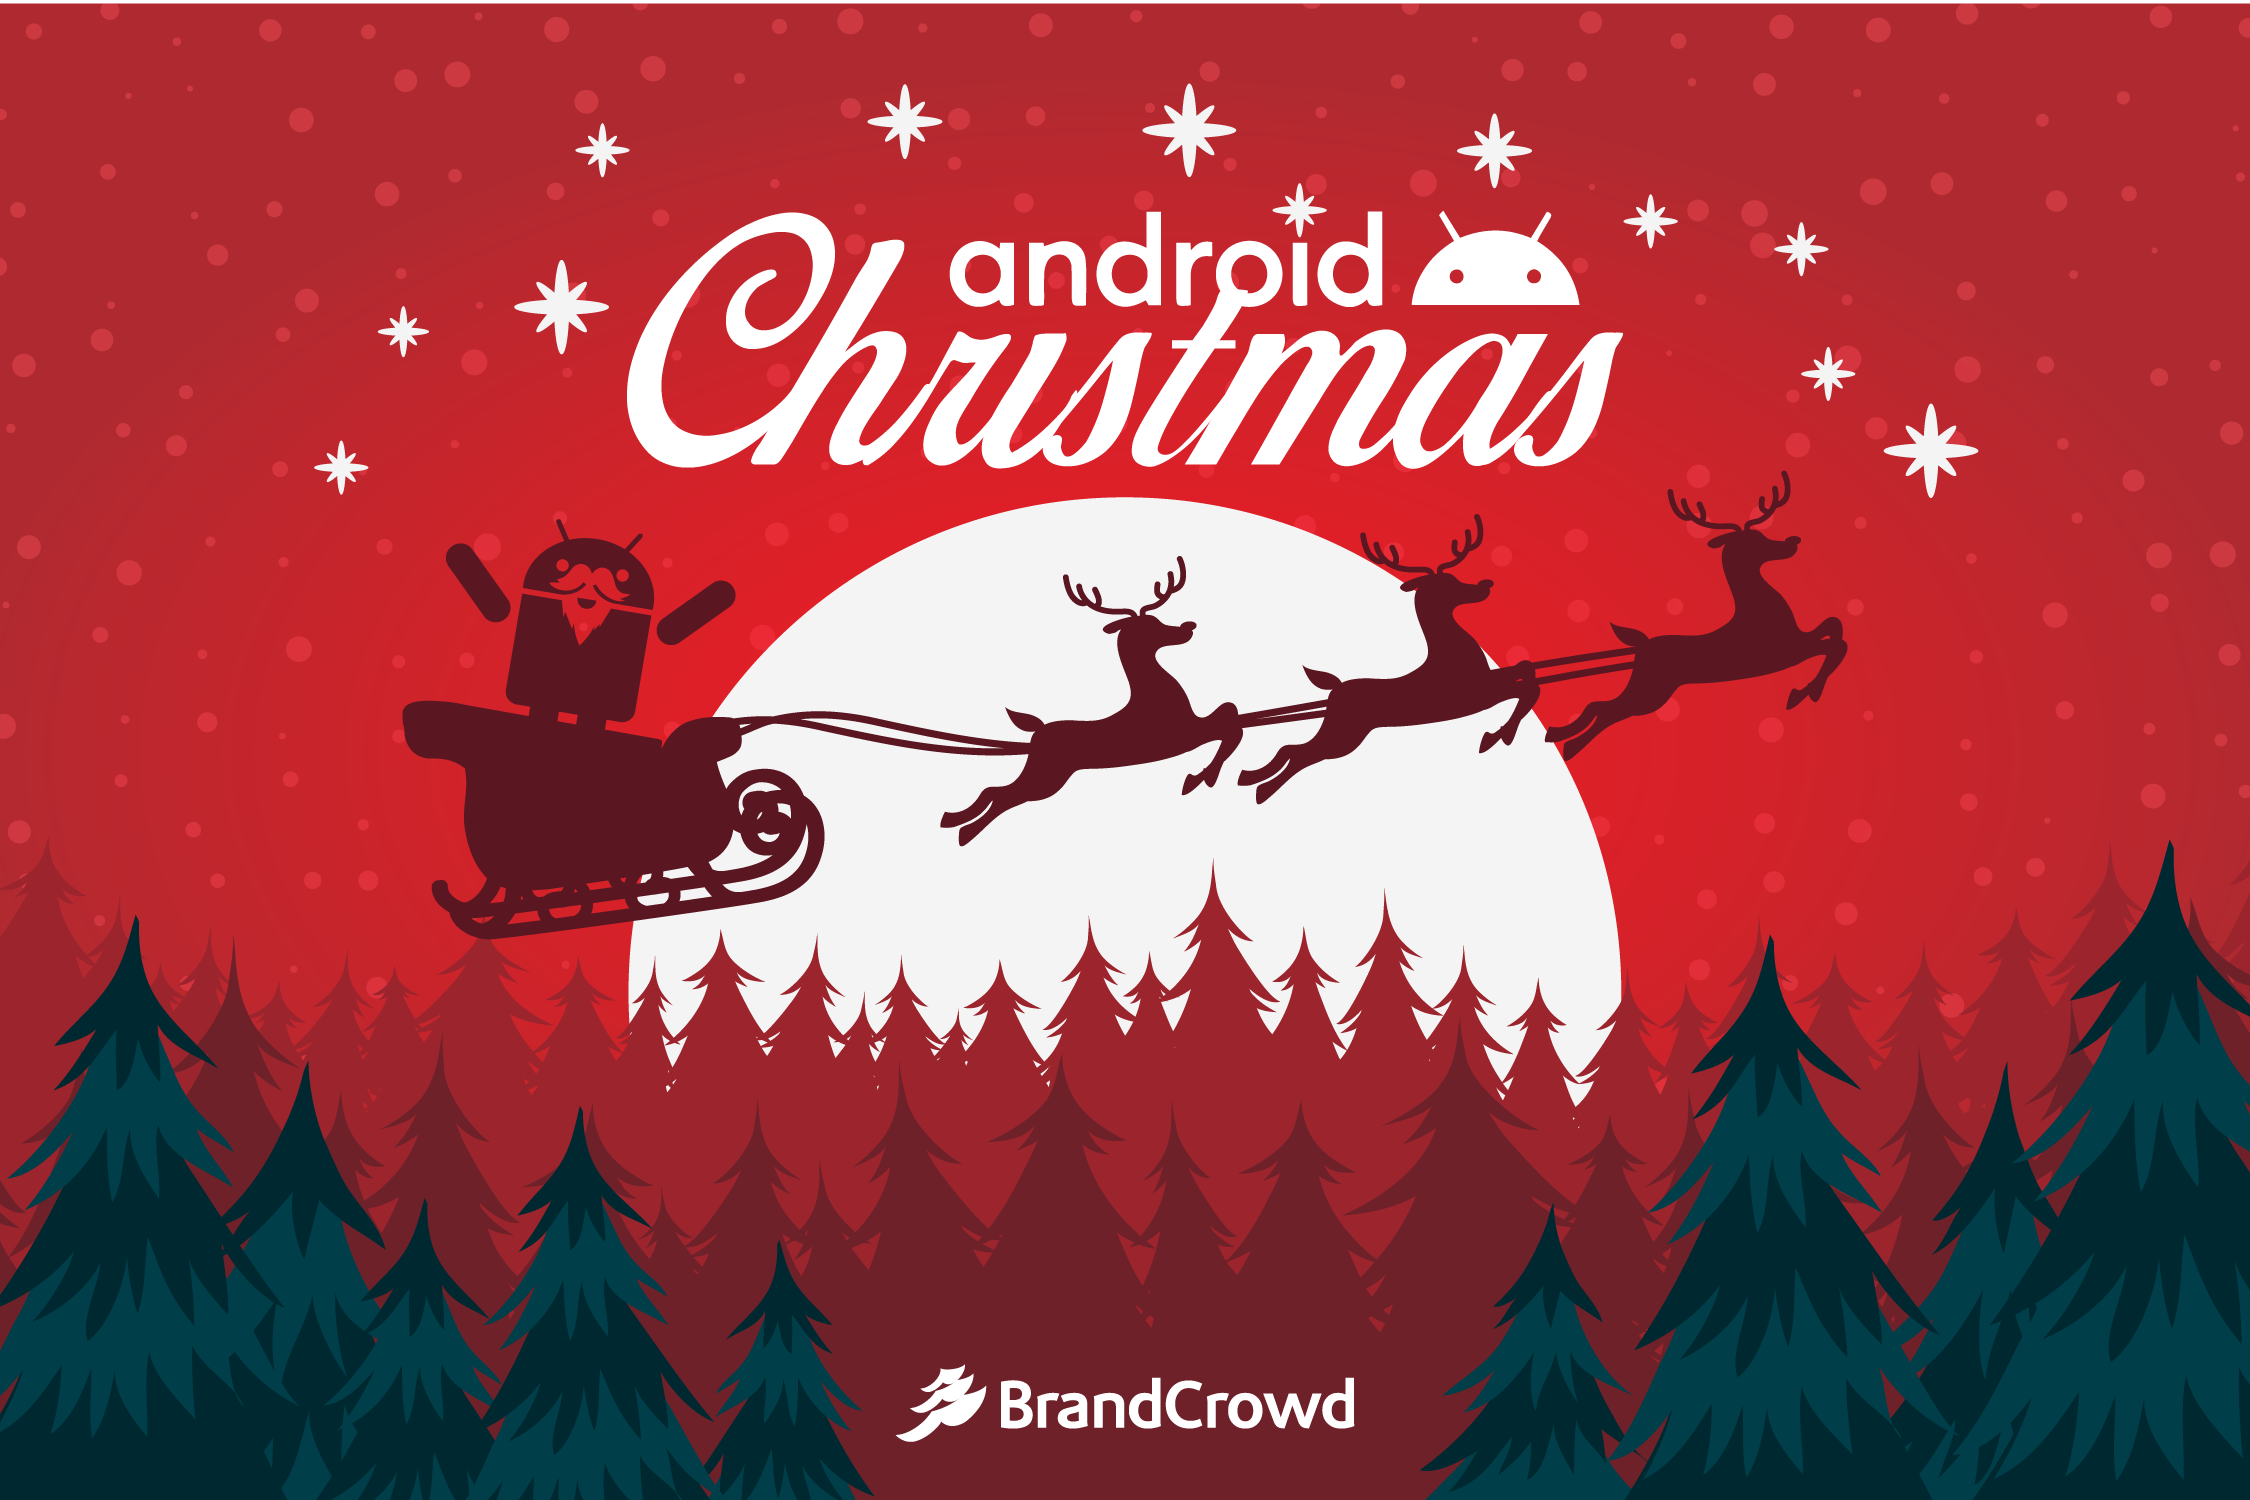 the-header-contains-a-silhouette-of-santa-claus-and-reindeers-riding-over-a-scenery